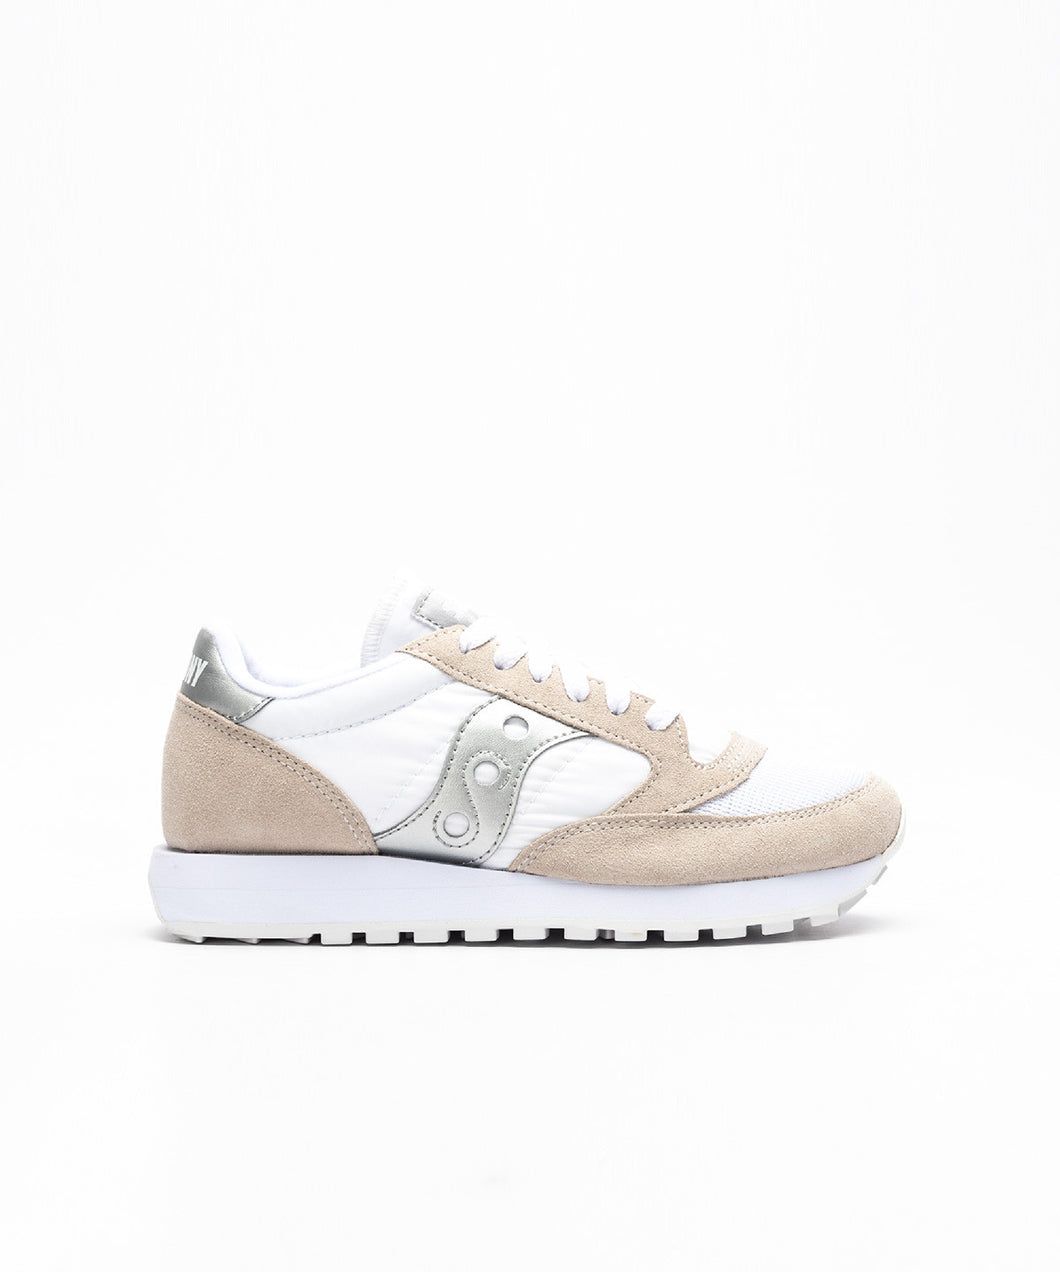 Saucony Jazz Original S70368 141